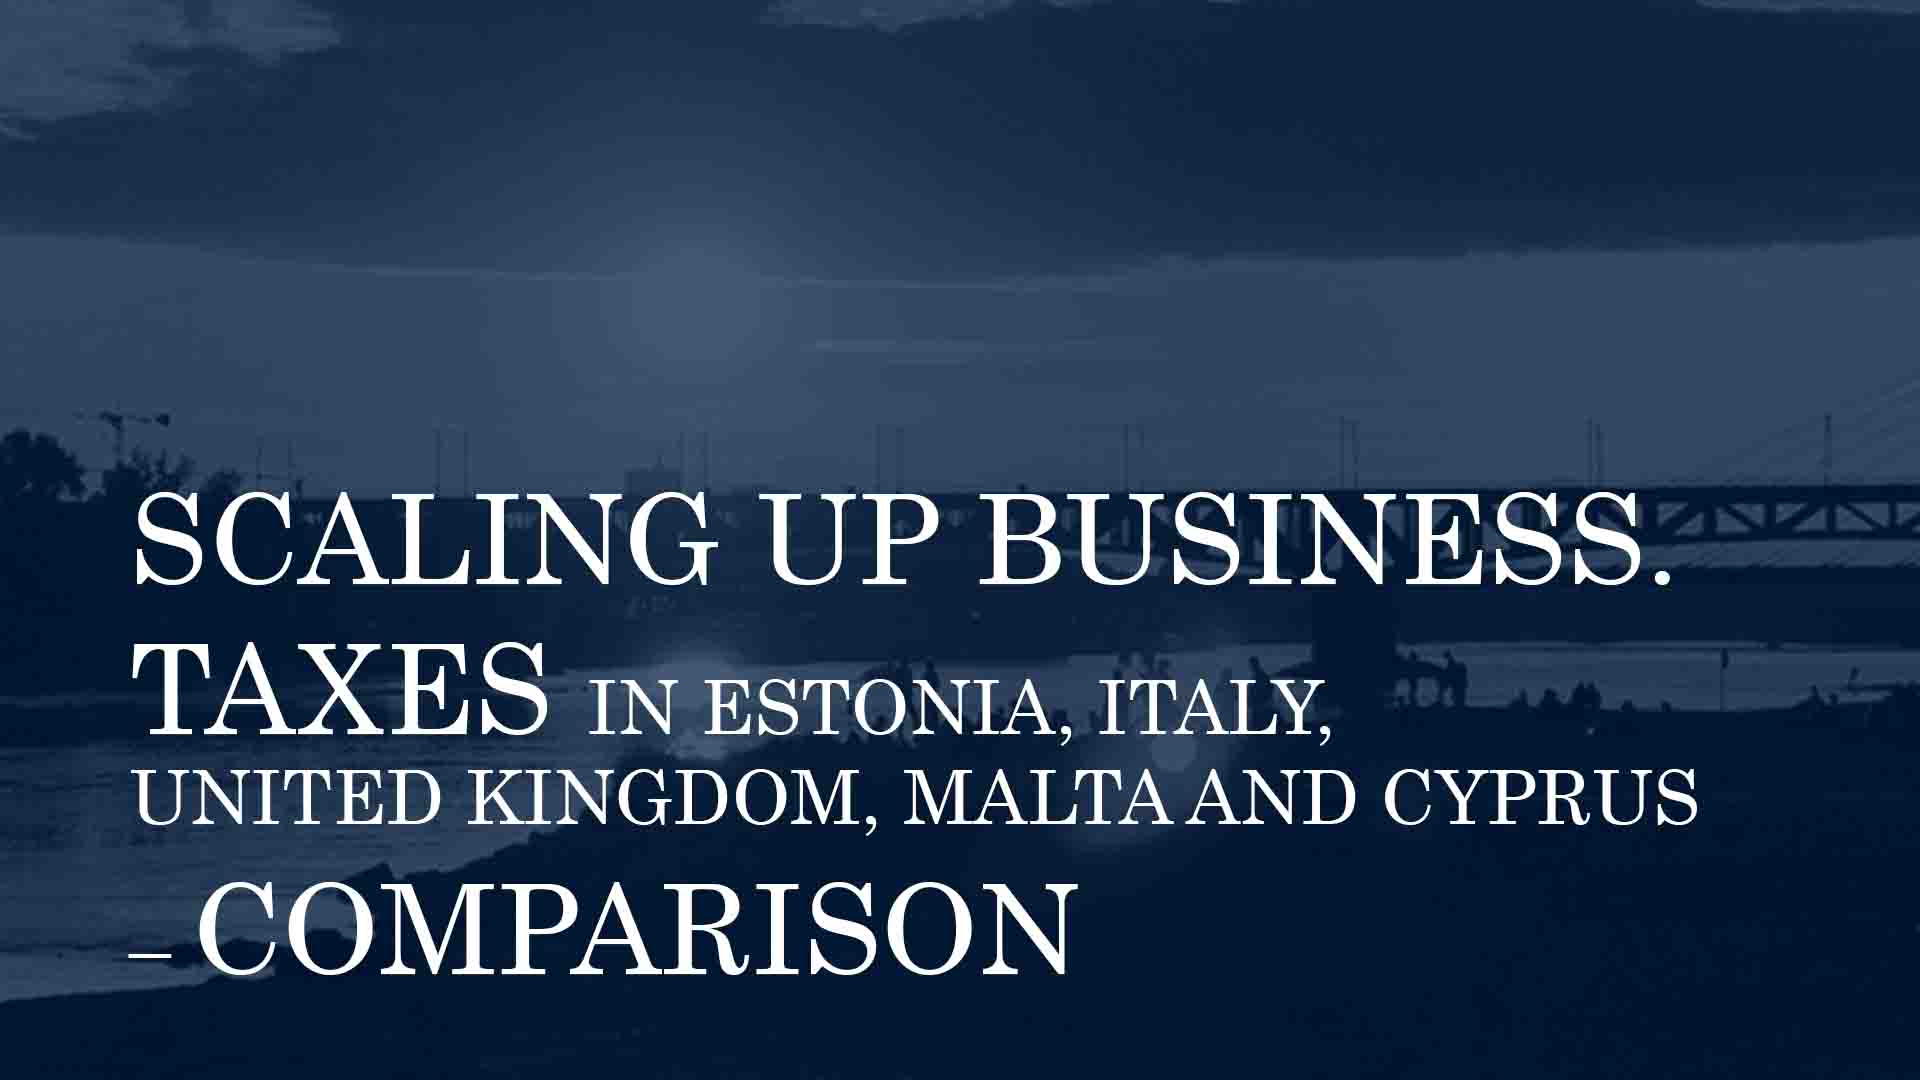 SCALING UP BUSINESS. TAXES IN ESTONIA, ITALY, UNITED KINGDOM, MALTA AND CYPRUS – COMPARISON